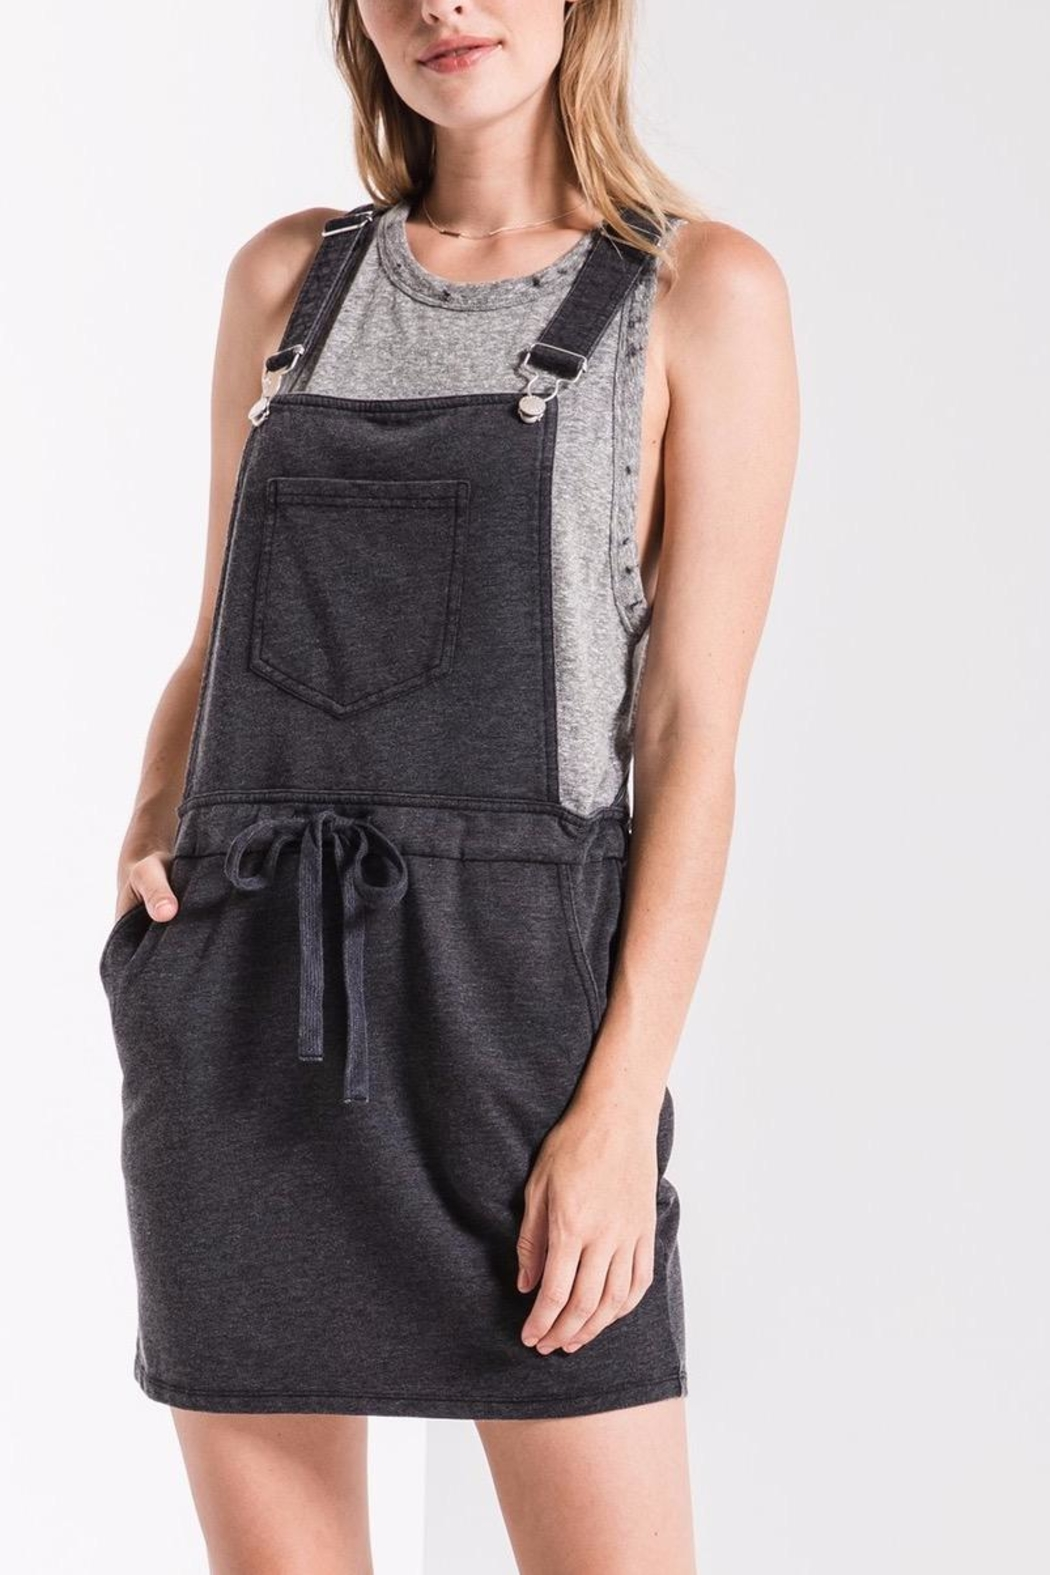 z supply The Skirt Overall - Main Image